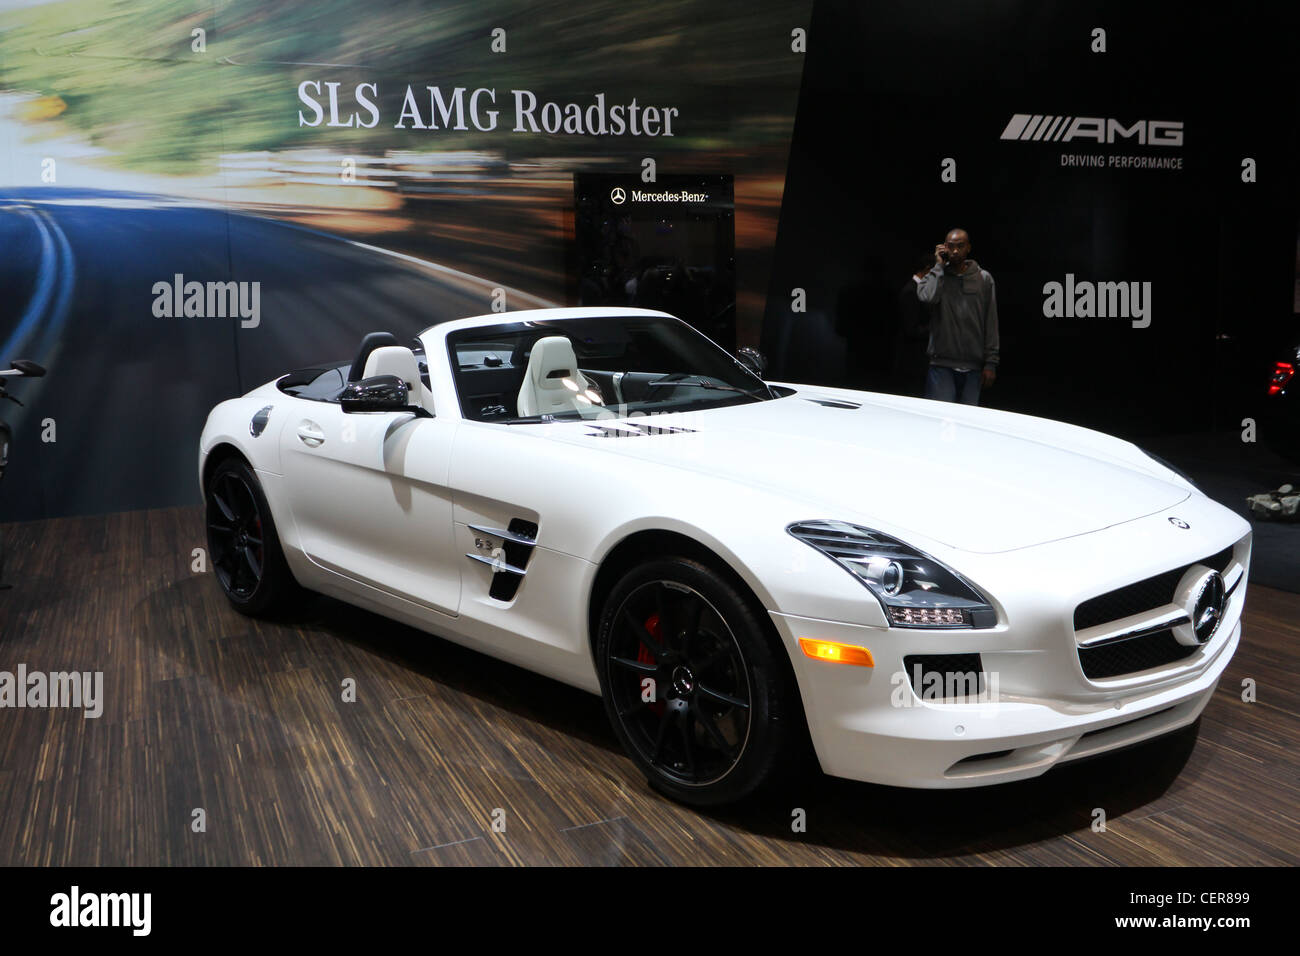 White convertible car mercedes benz sls amg roadster stock photo white convertible car mercedes benz sls amg roadster publicscrutiny Choice Image